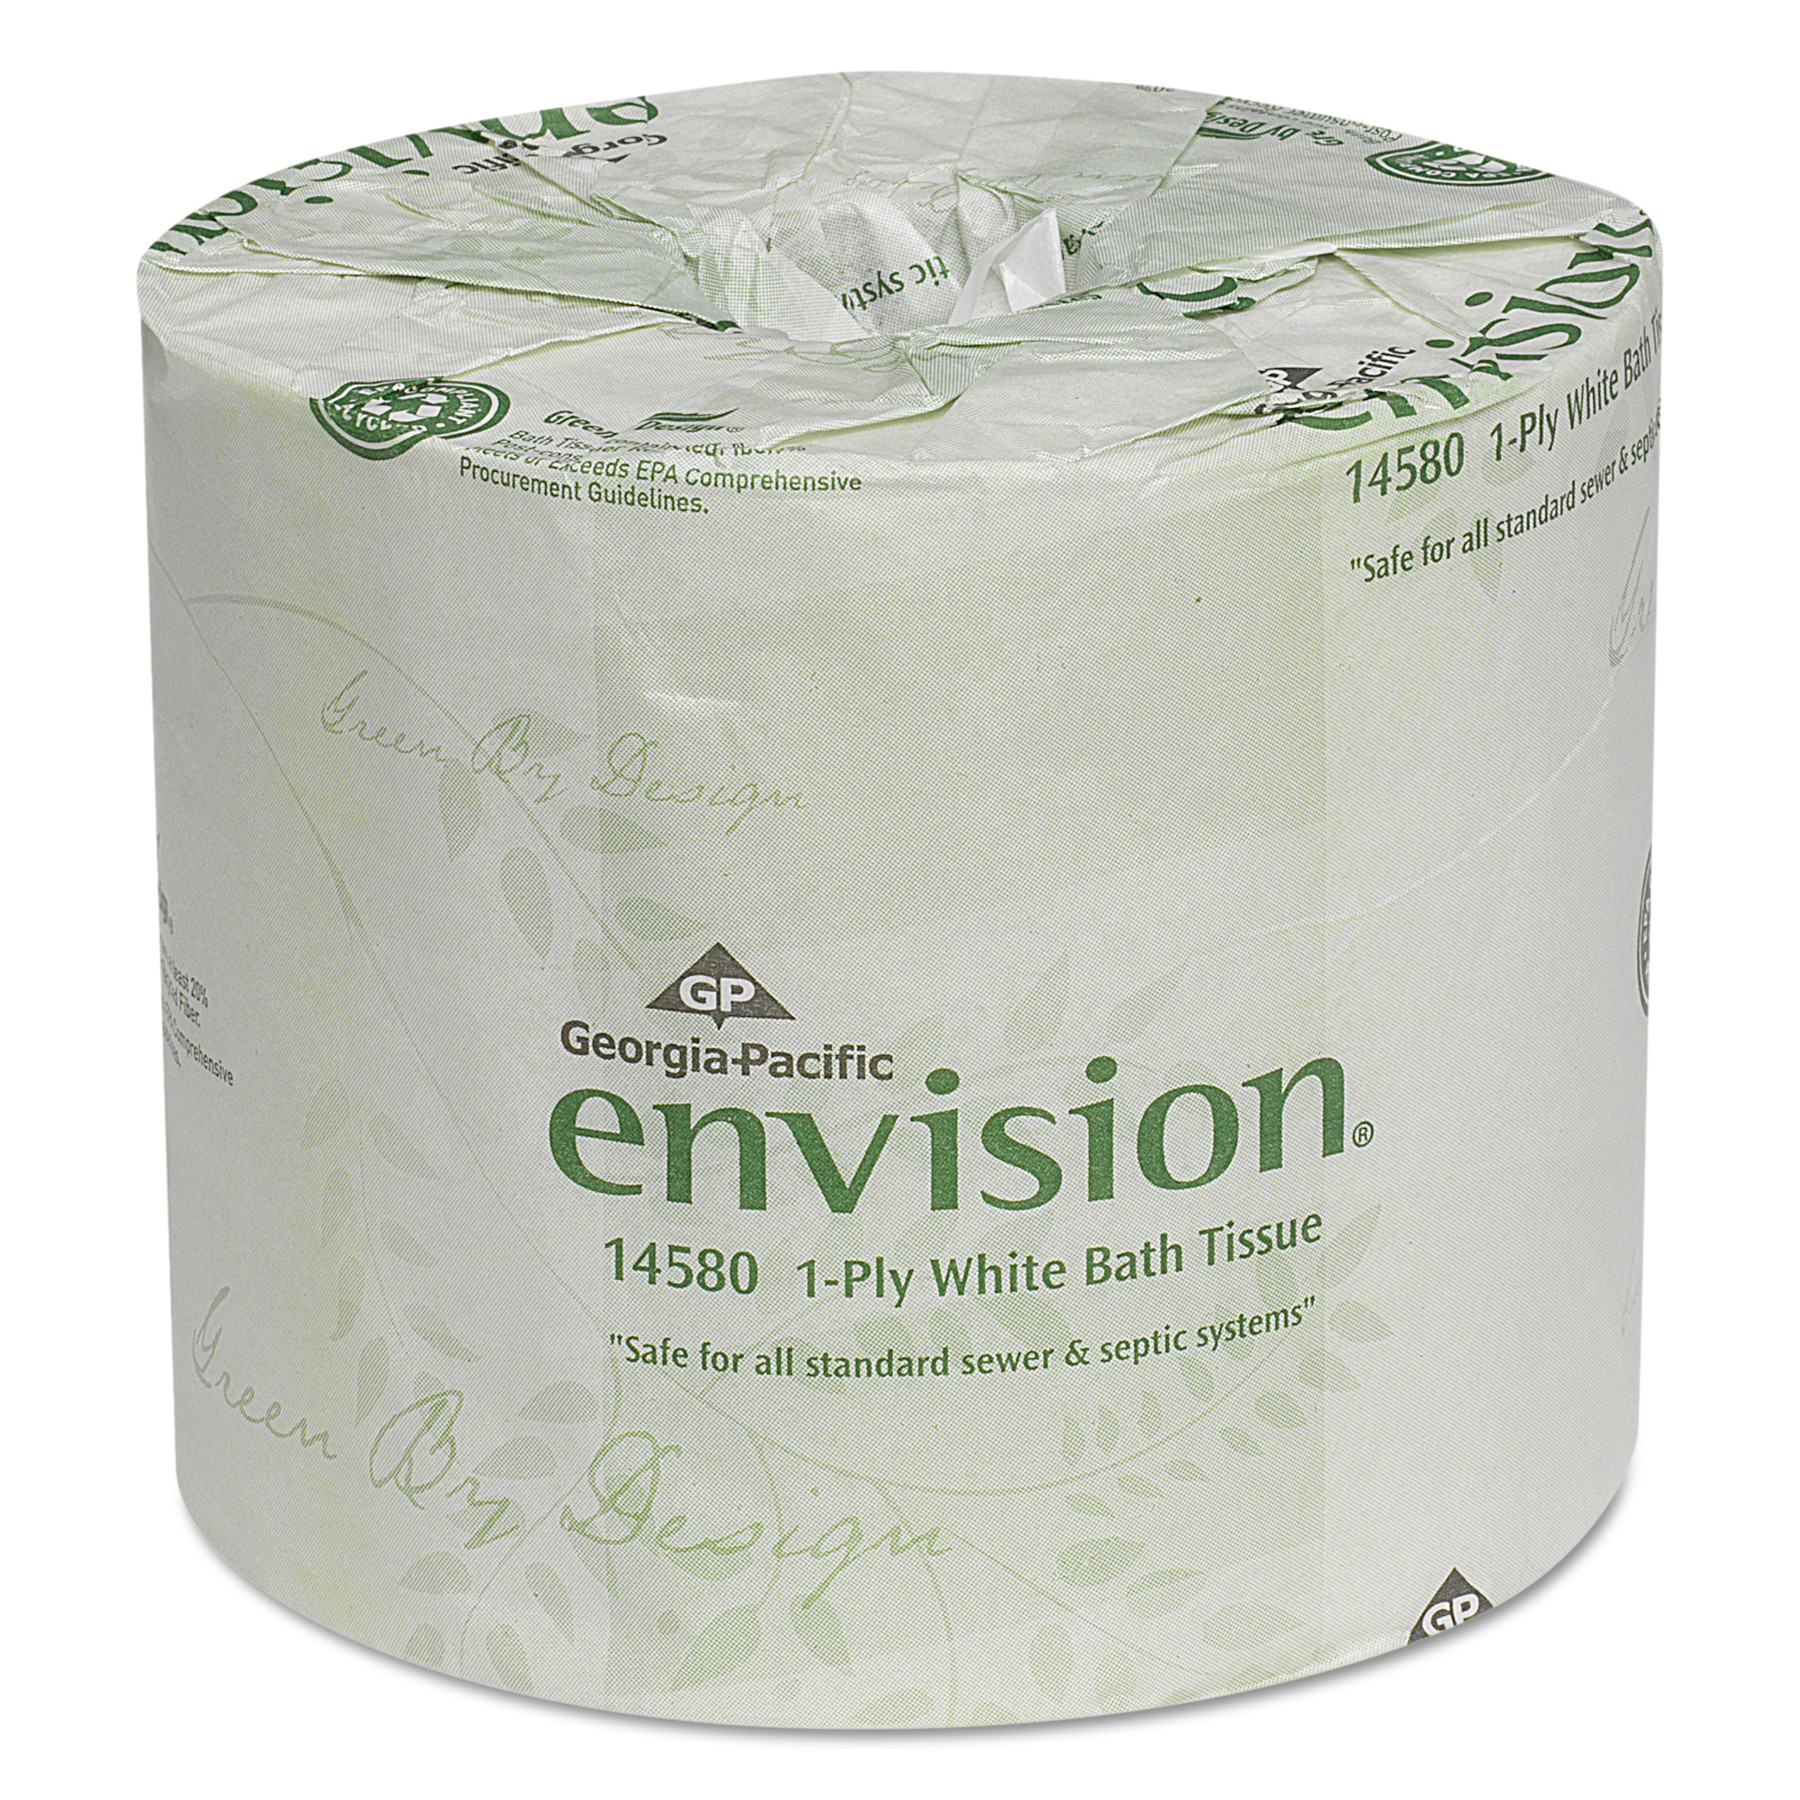 Georgia Pacific Envision One-Ply Bathroom Tissue, 1210 Ft, 80 ct